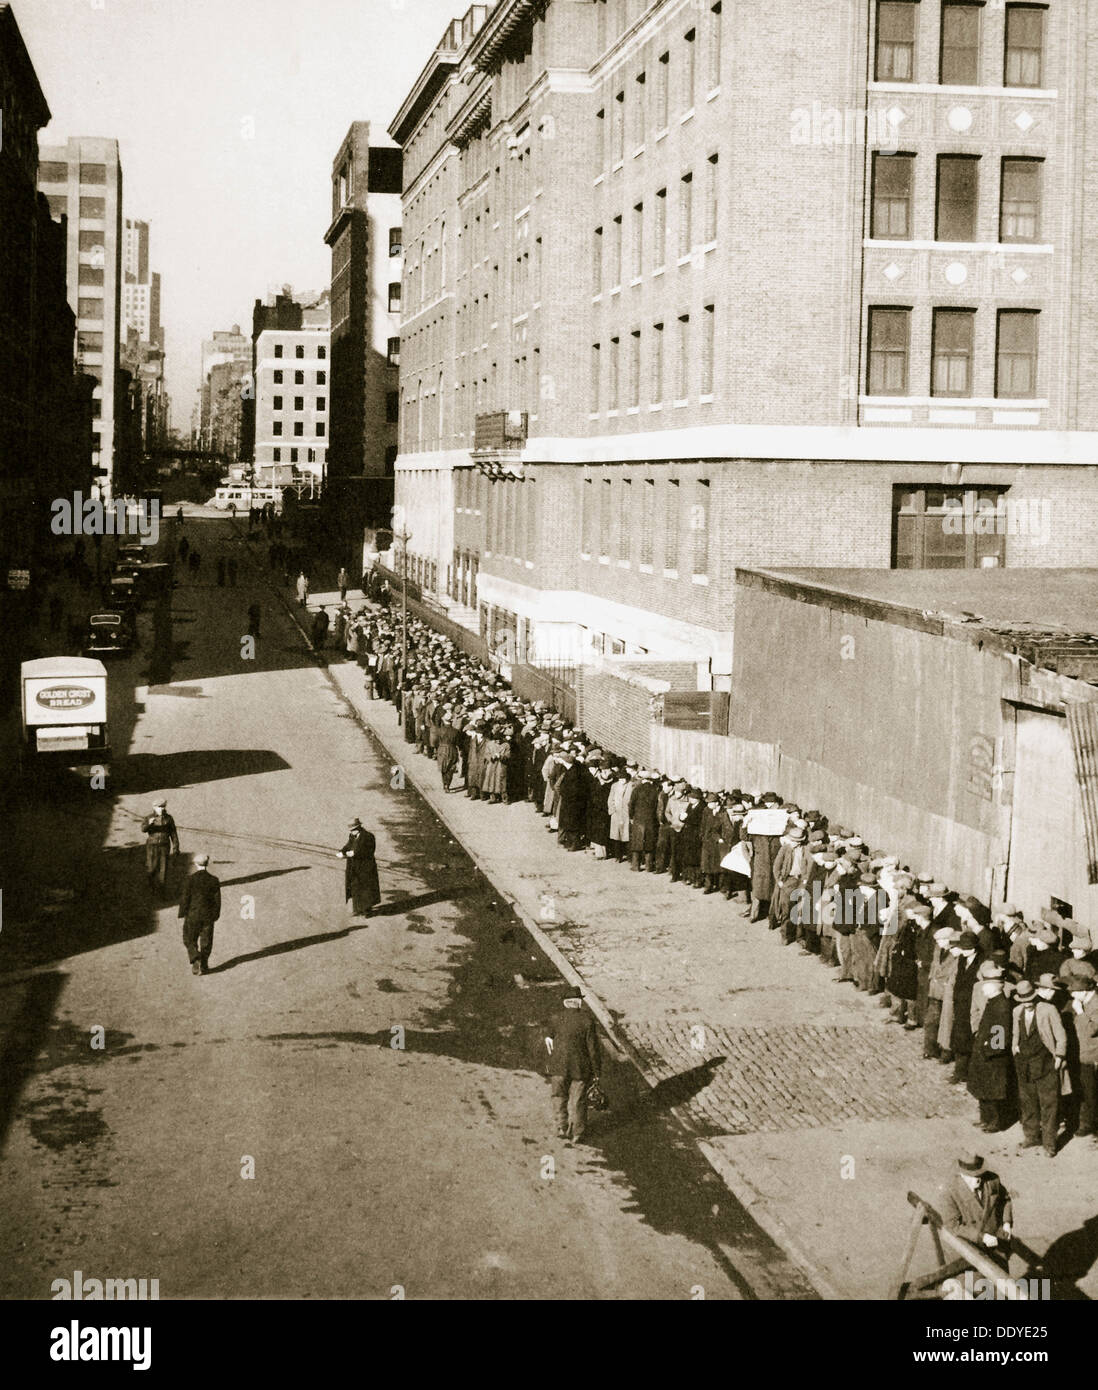 The breadline, a visible sign of poverty during the Great Depression, USA, 1930s Artist: Unknown - Stock Image